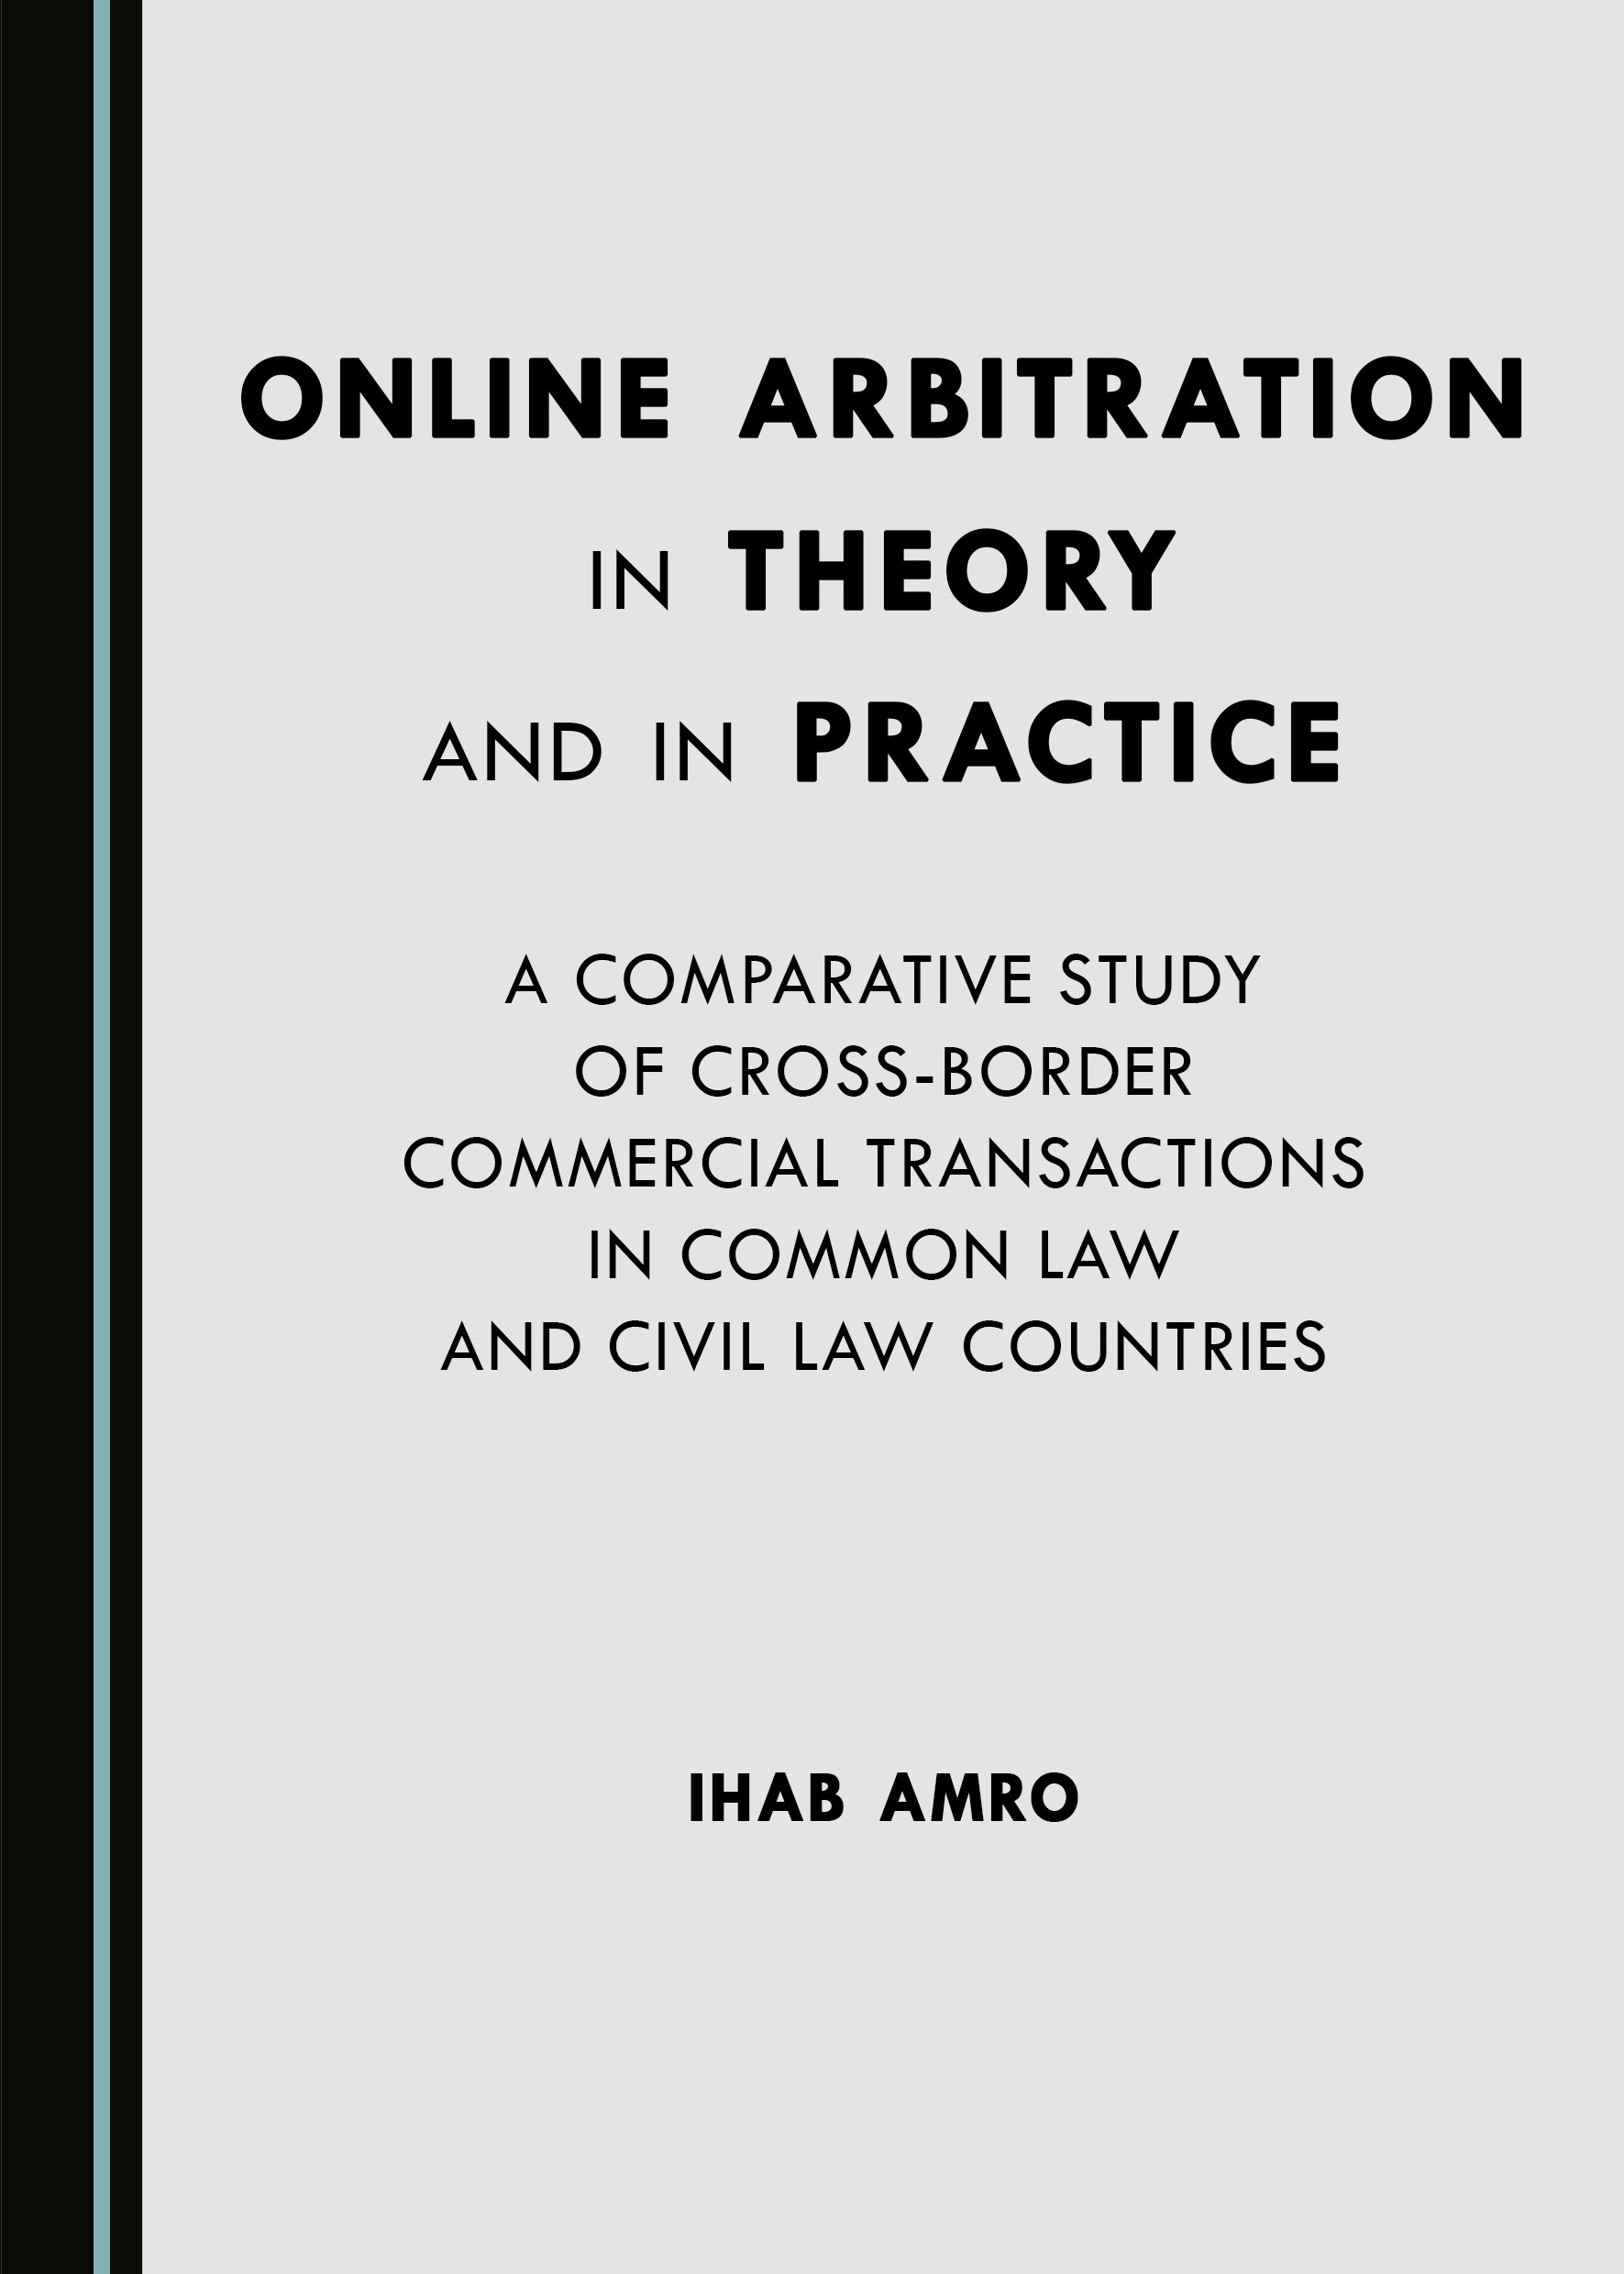 Online Arbitration in Theory and in Practice: A Comparative Study of Cross-Border Commercial Transactions in Common Law and Civil Law Countries